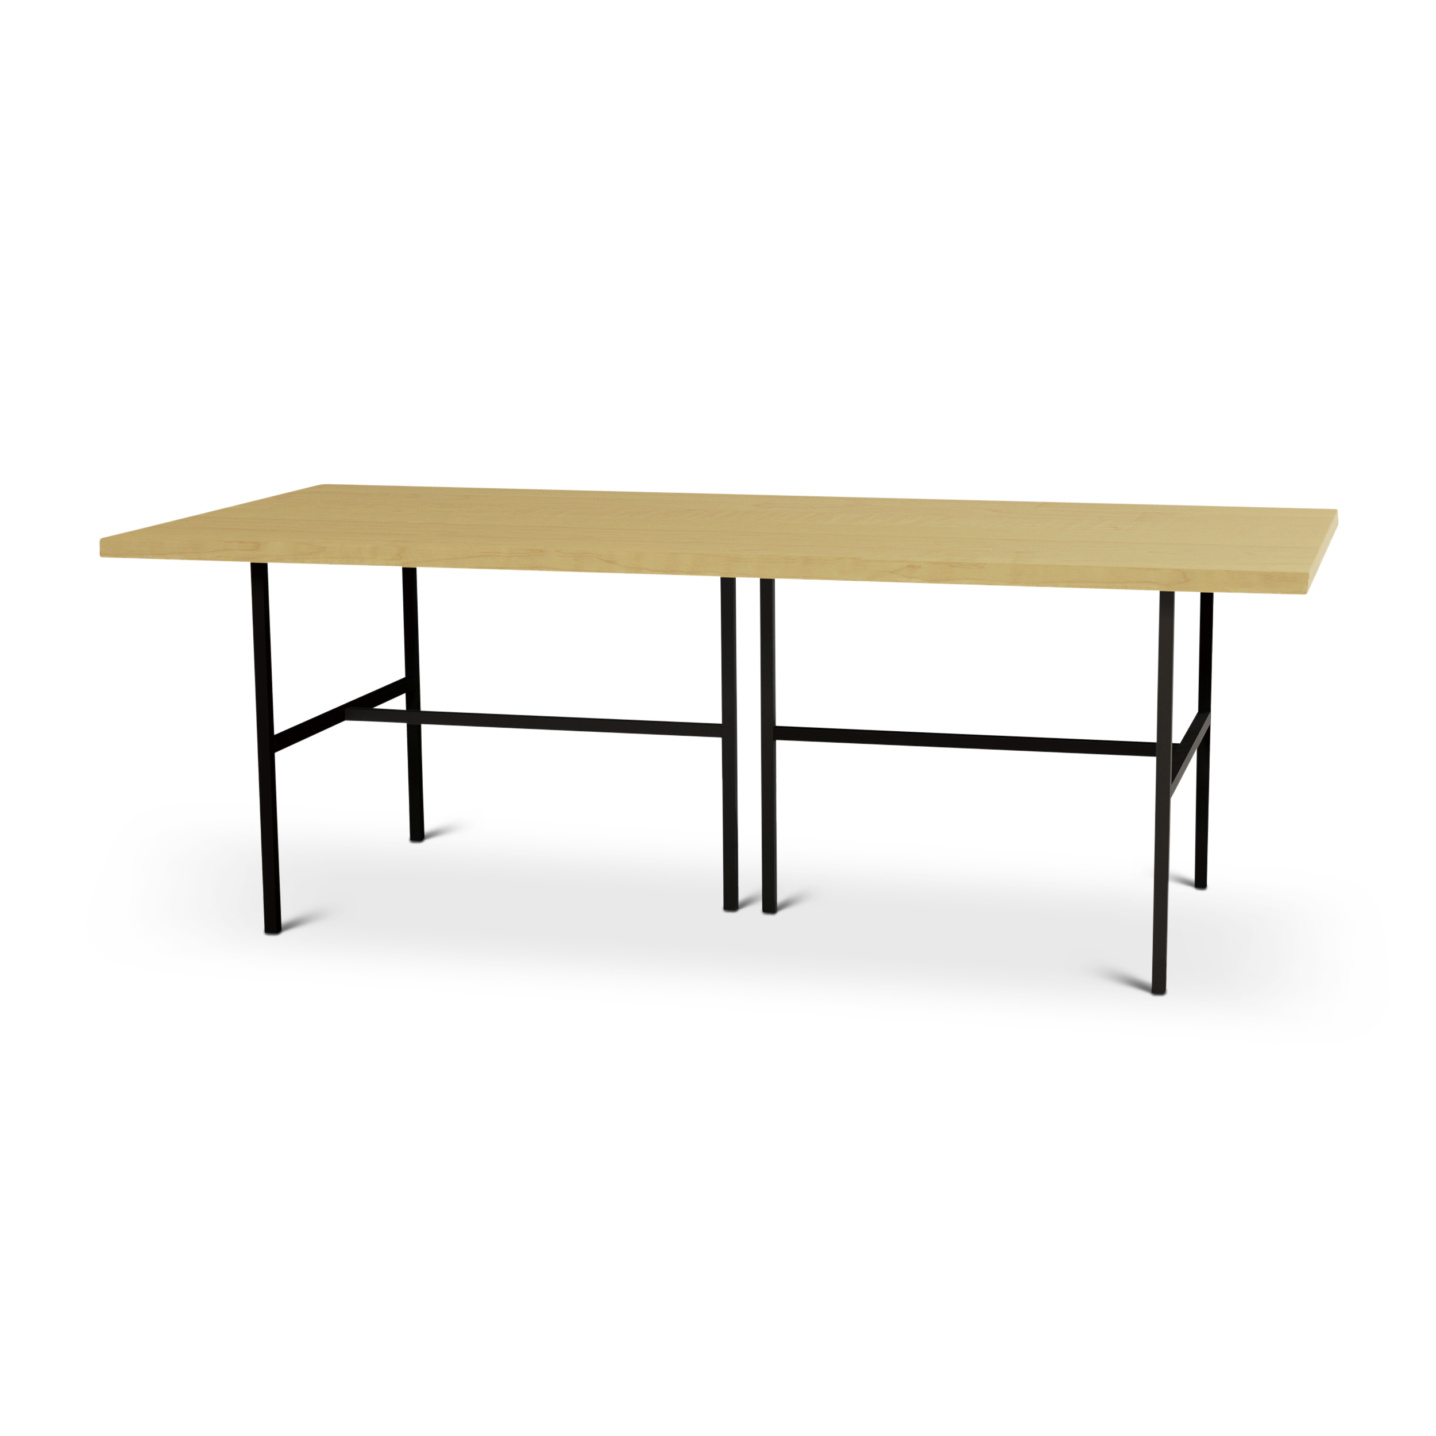 7 foot modern maple table with metal legs